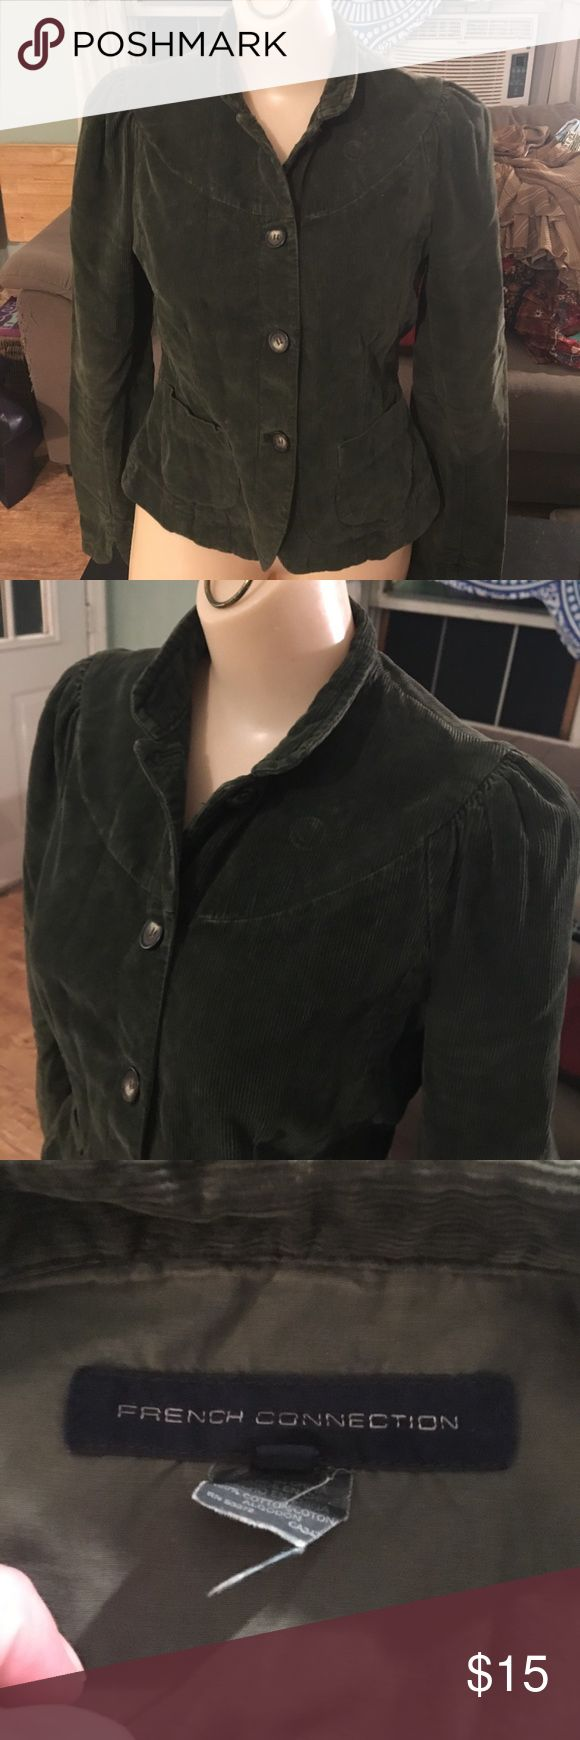 French Connection forest green corduroy jacket French Connection forest green corduroy jacket. Size 6. Fitted at the waist. Good condition   100% cotton French Connection Jackets & Coats Jean Jackets